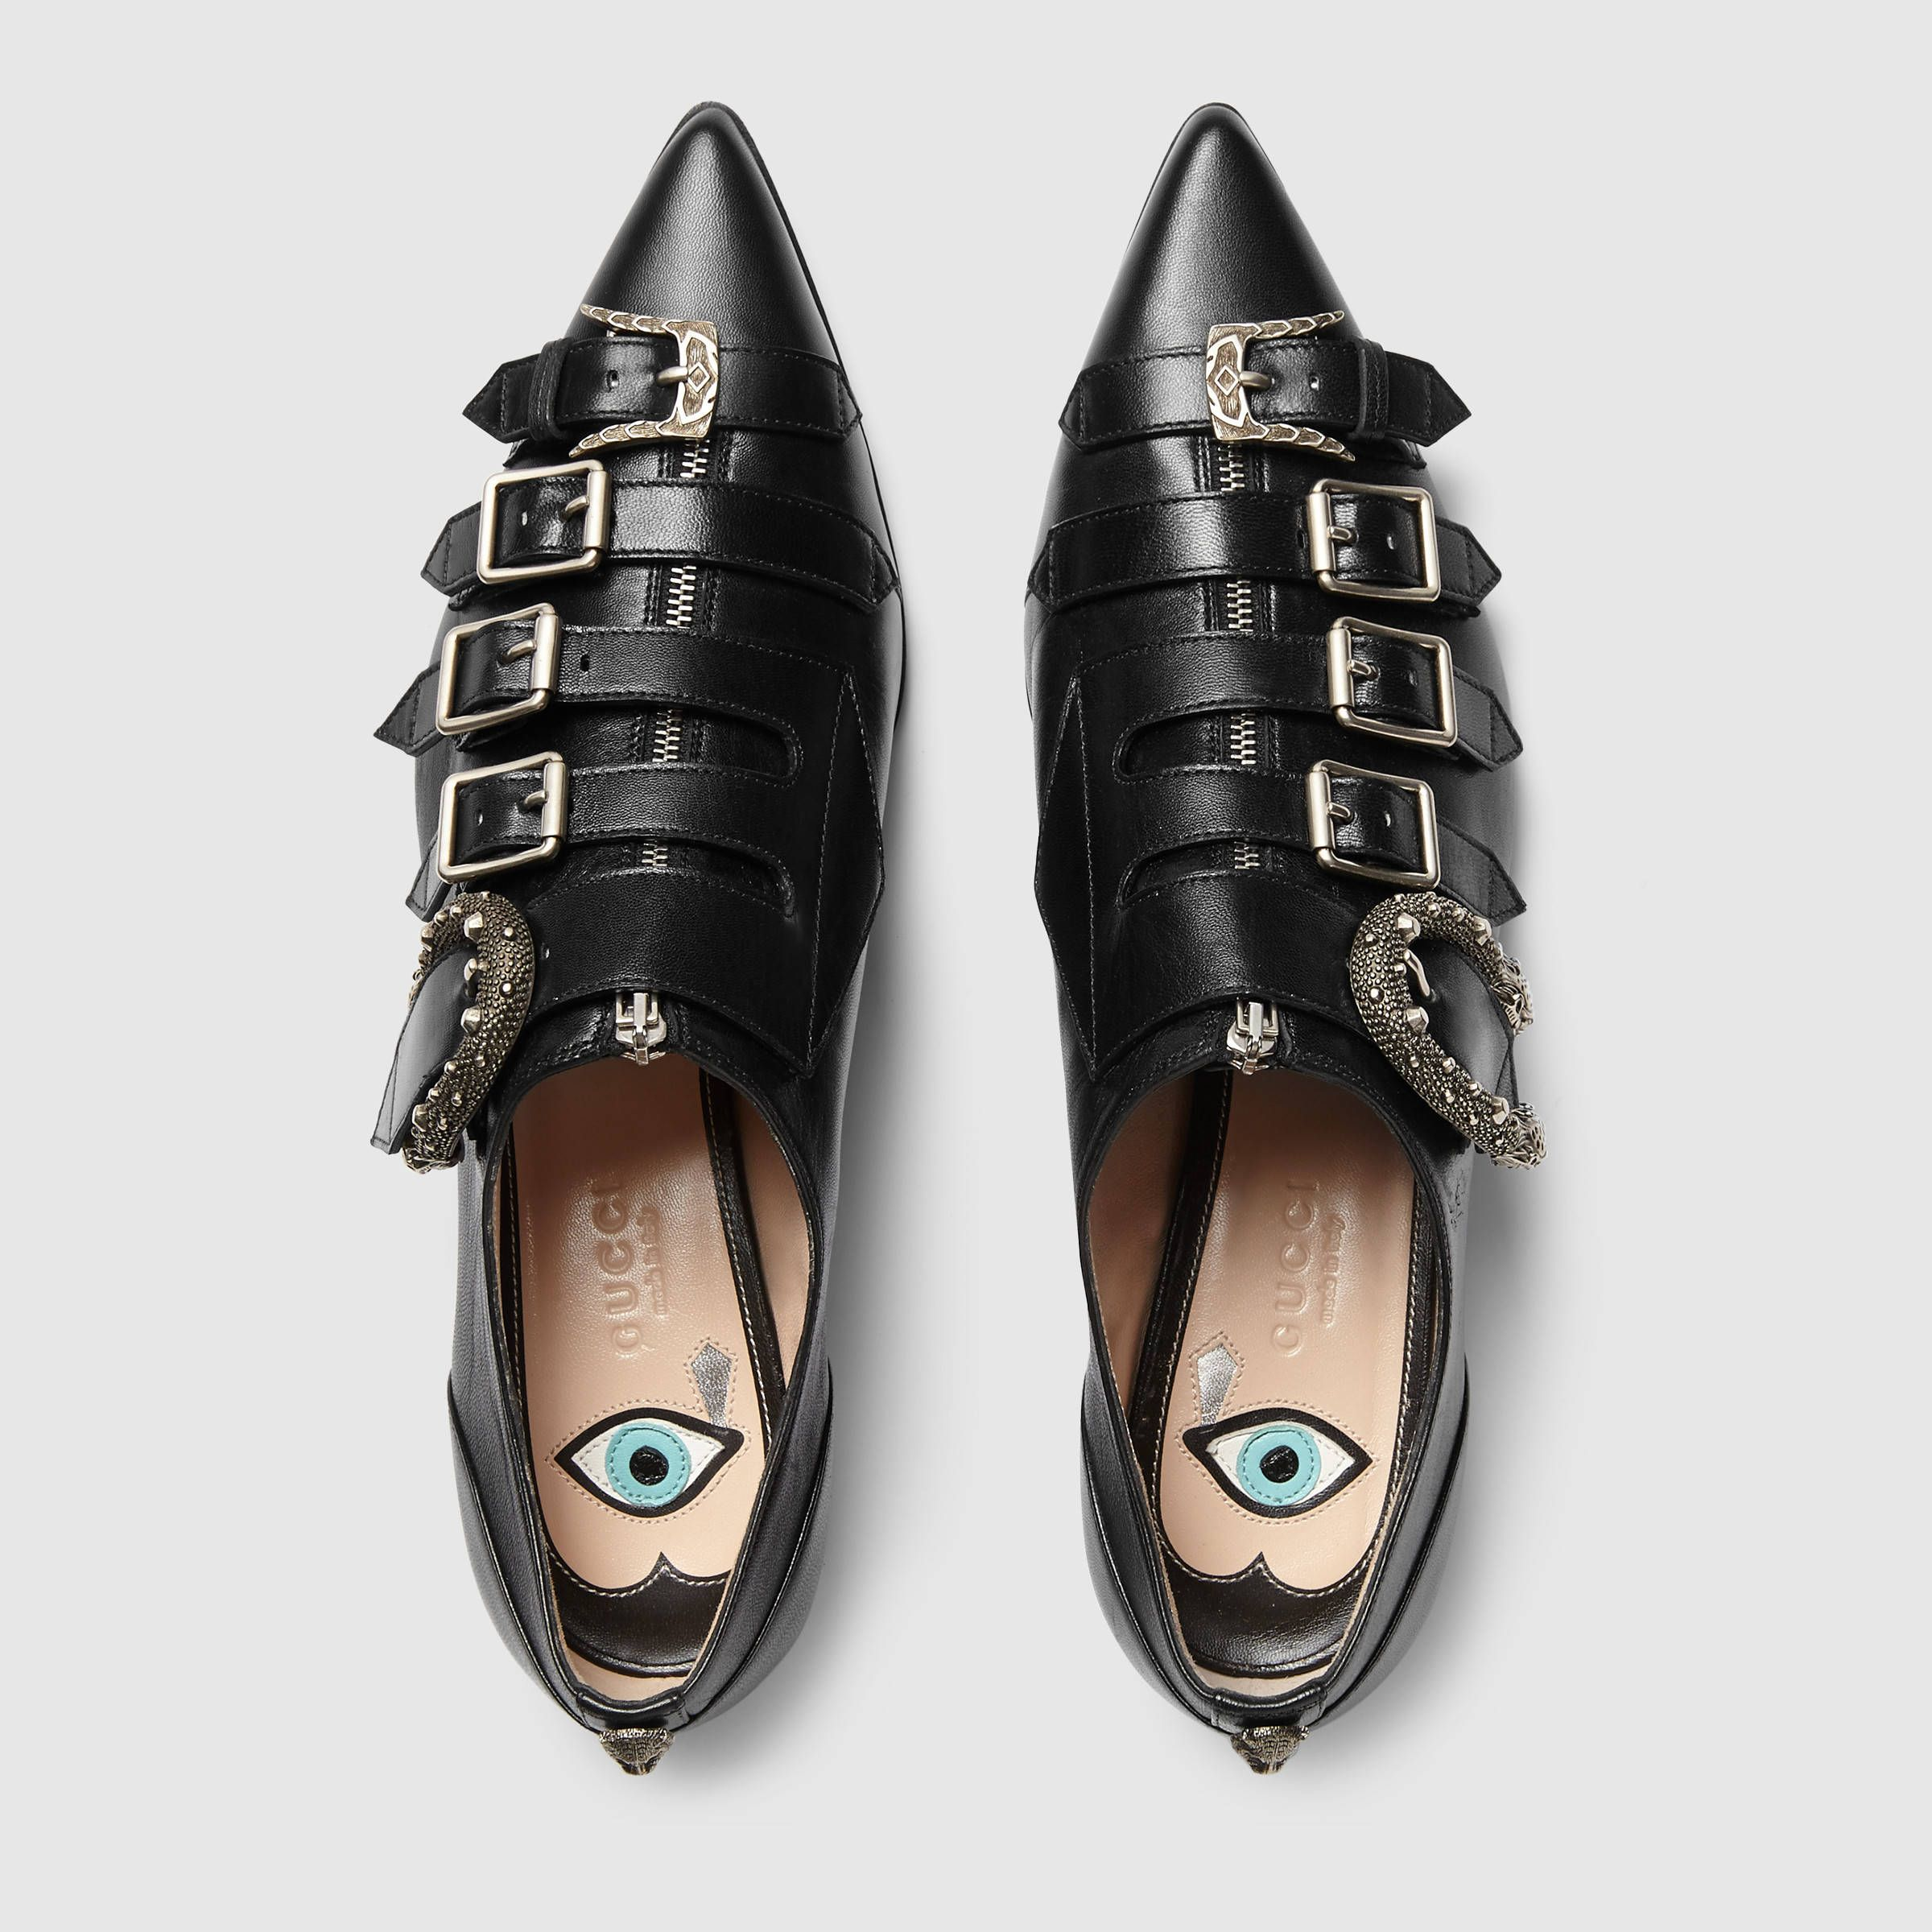 afc47179b8b Pin by Lauren Sharpe on Shoes